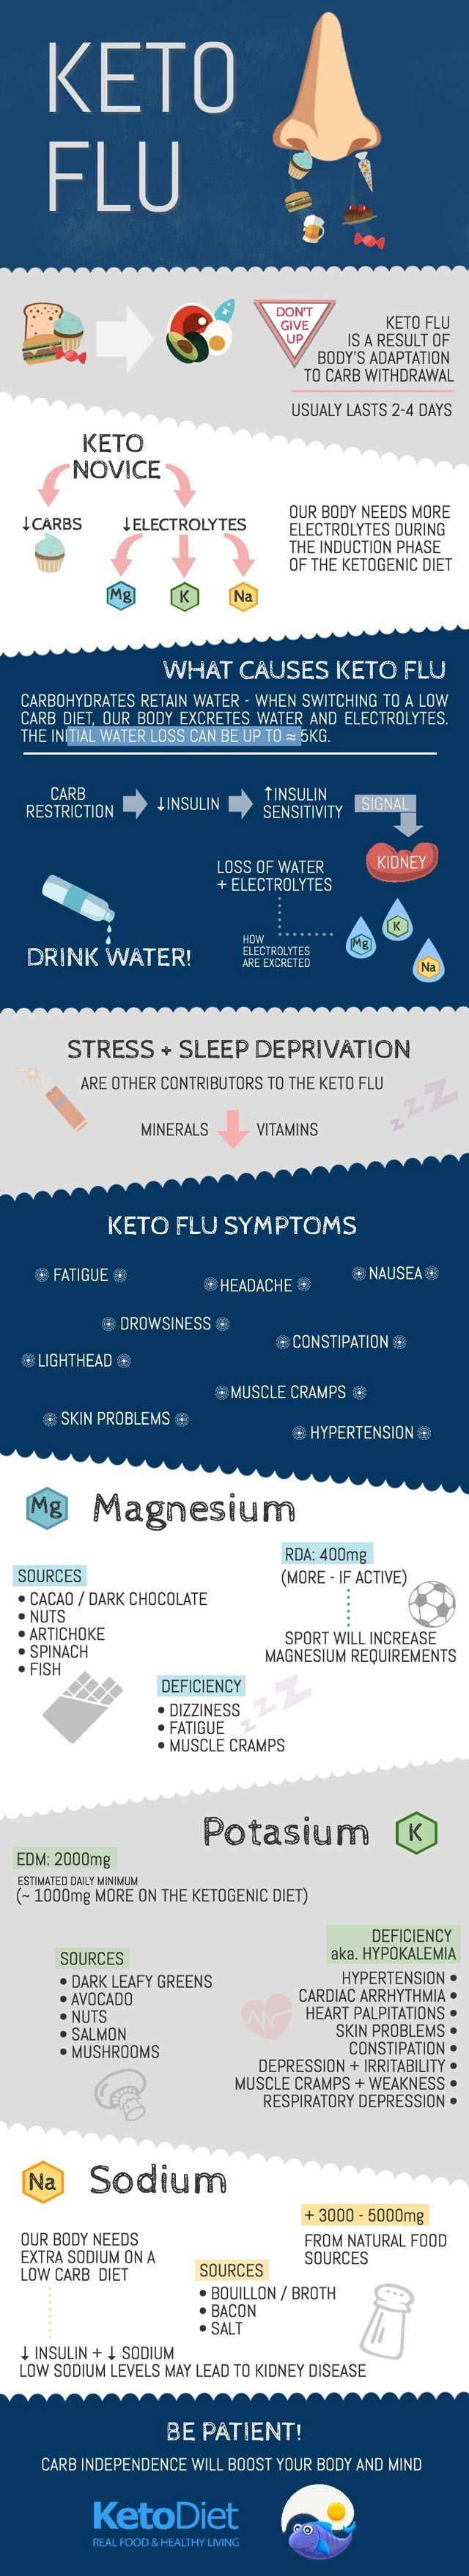 """Keto flu"" is very common state during induction phase of Ketosis. This state is also followed by dizziness, nausea, diarrhea, or muscle cramps."